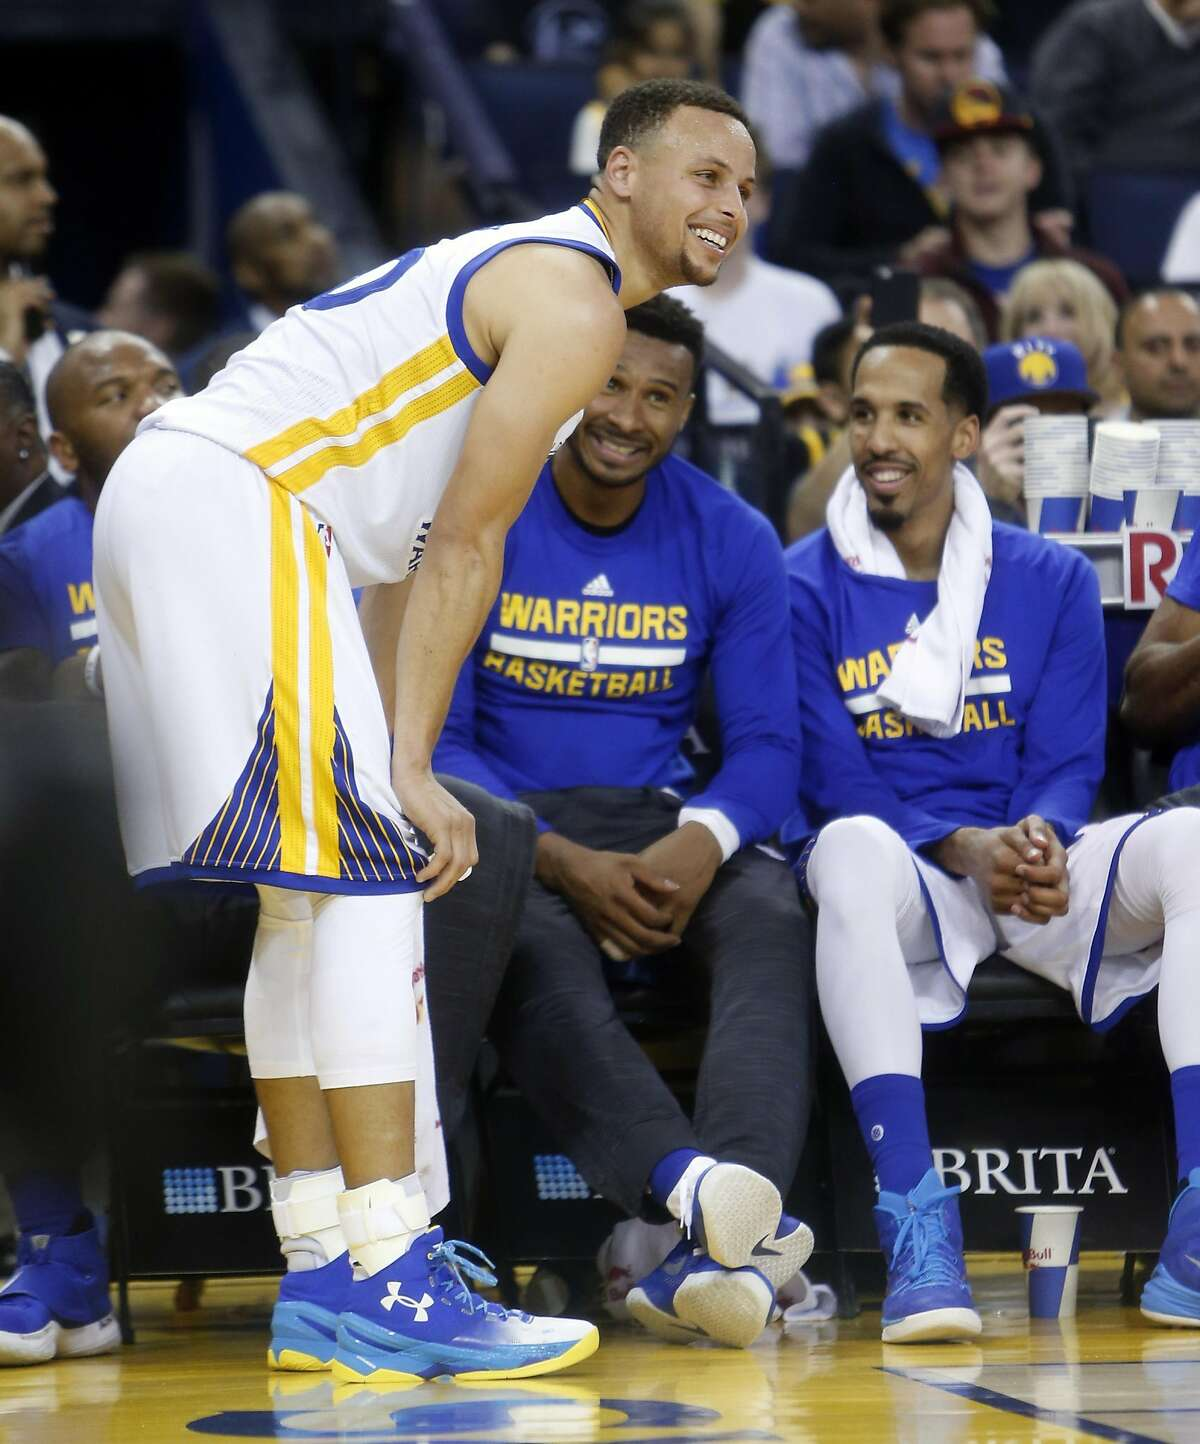 Golden State Warriors' Stephen Curry, Leandro Barbosa and Shaun Livingston share a laugh during 2nd quarter stoppage of play against Portland Trail Blazers in NBA game at Oracle Arena in Oakland, Calif., on Sunday, April 3, 2016.